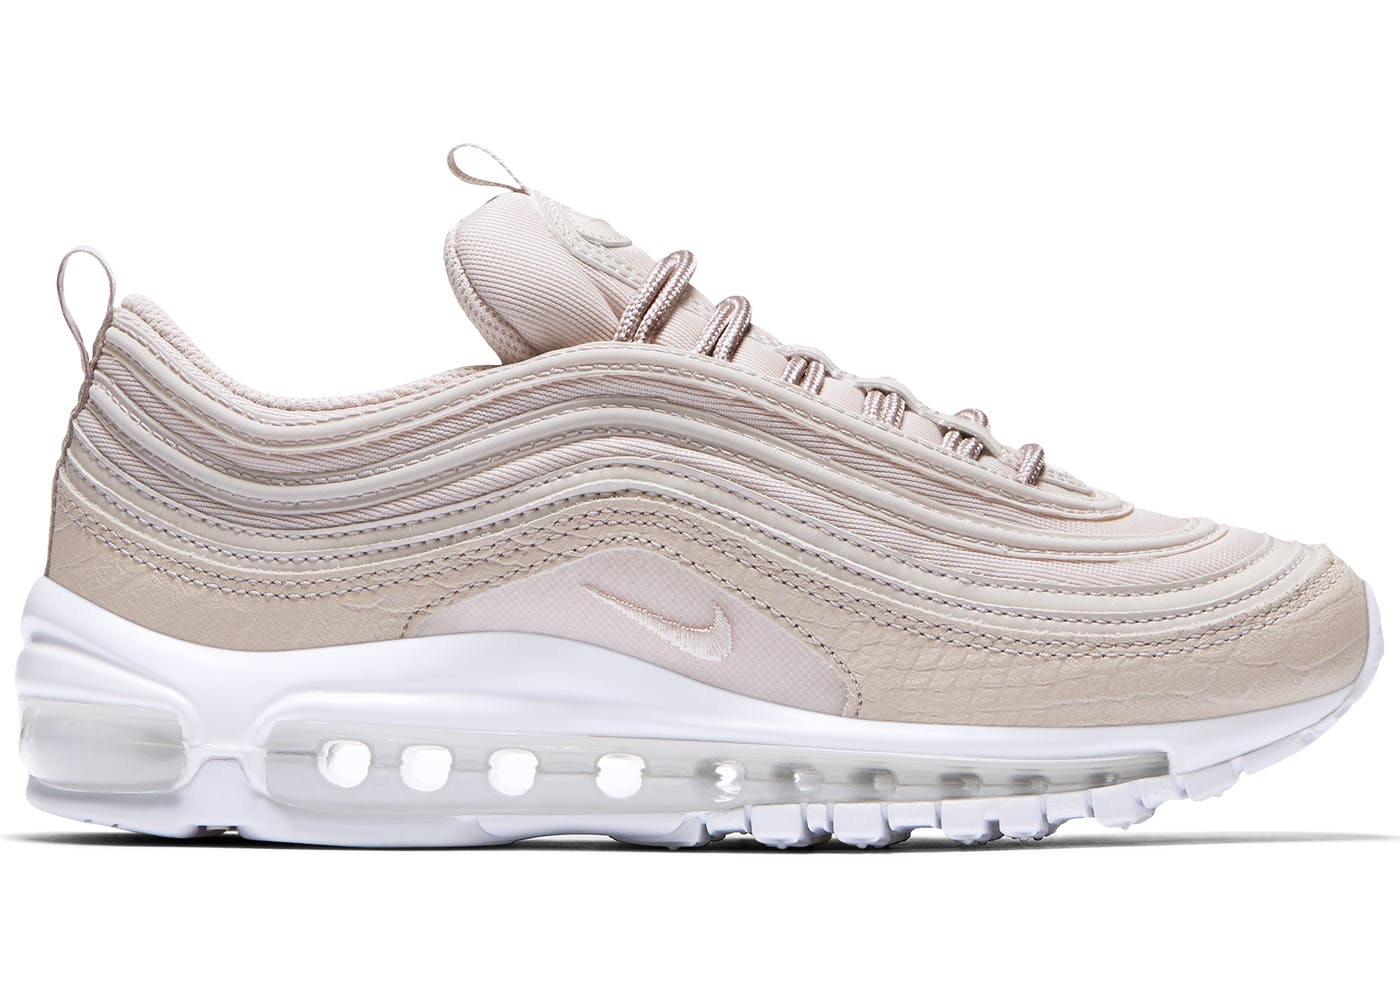 280769d22f2dc The OG Nike Air Max 97 is Set to Return in Quickstrike Fashion